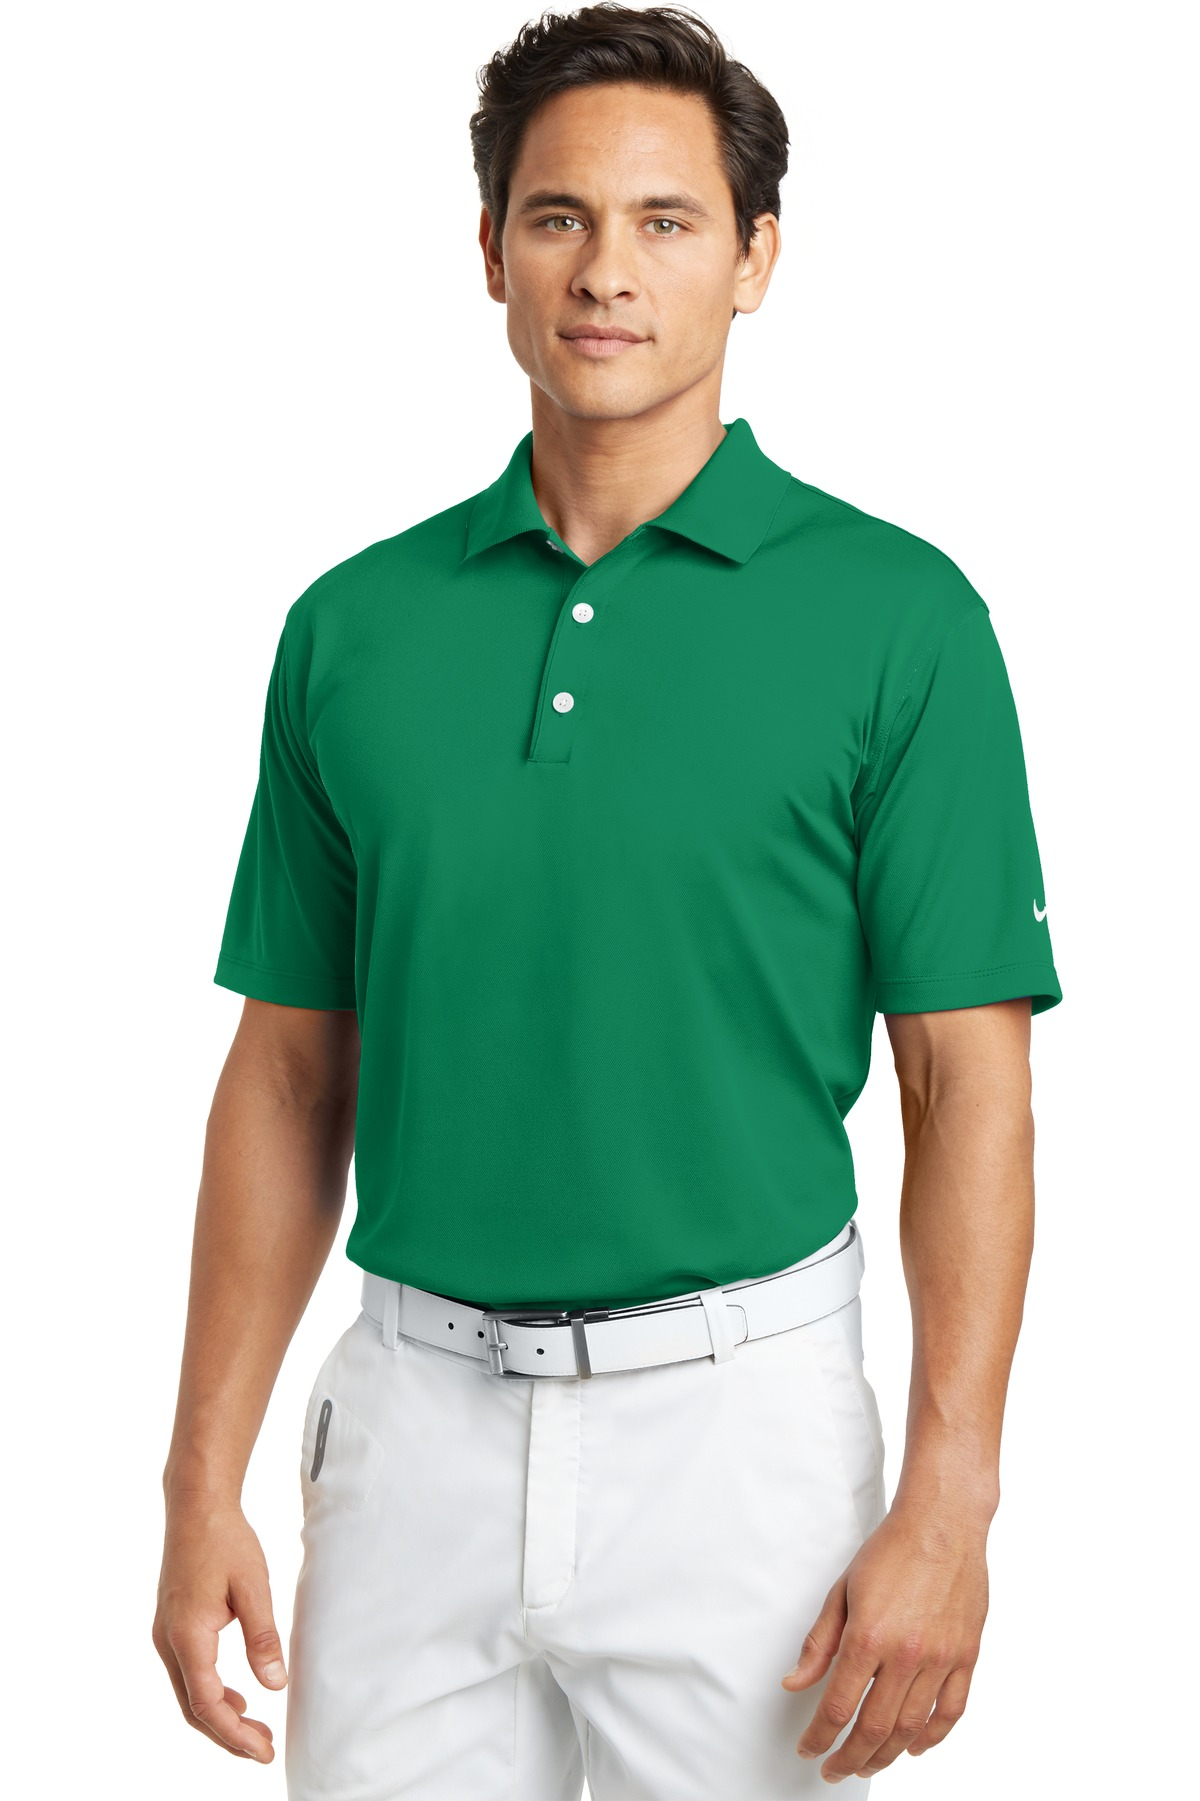 Buy Nike Golf Tech Basic Dri Fit Polo Nike Online At Best Price